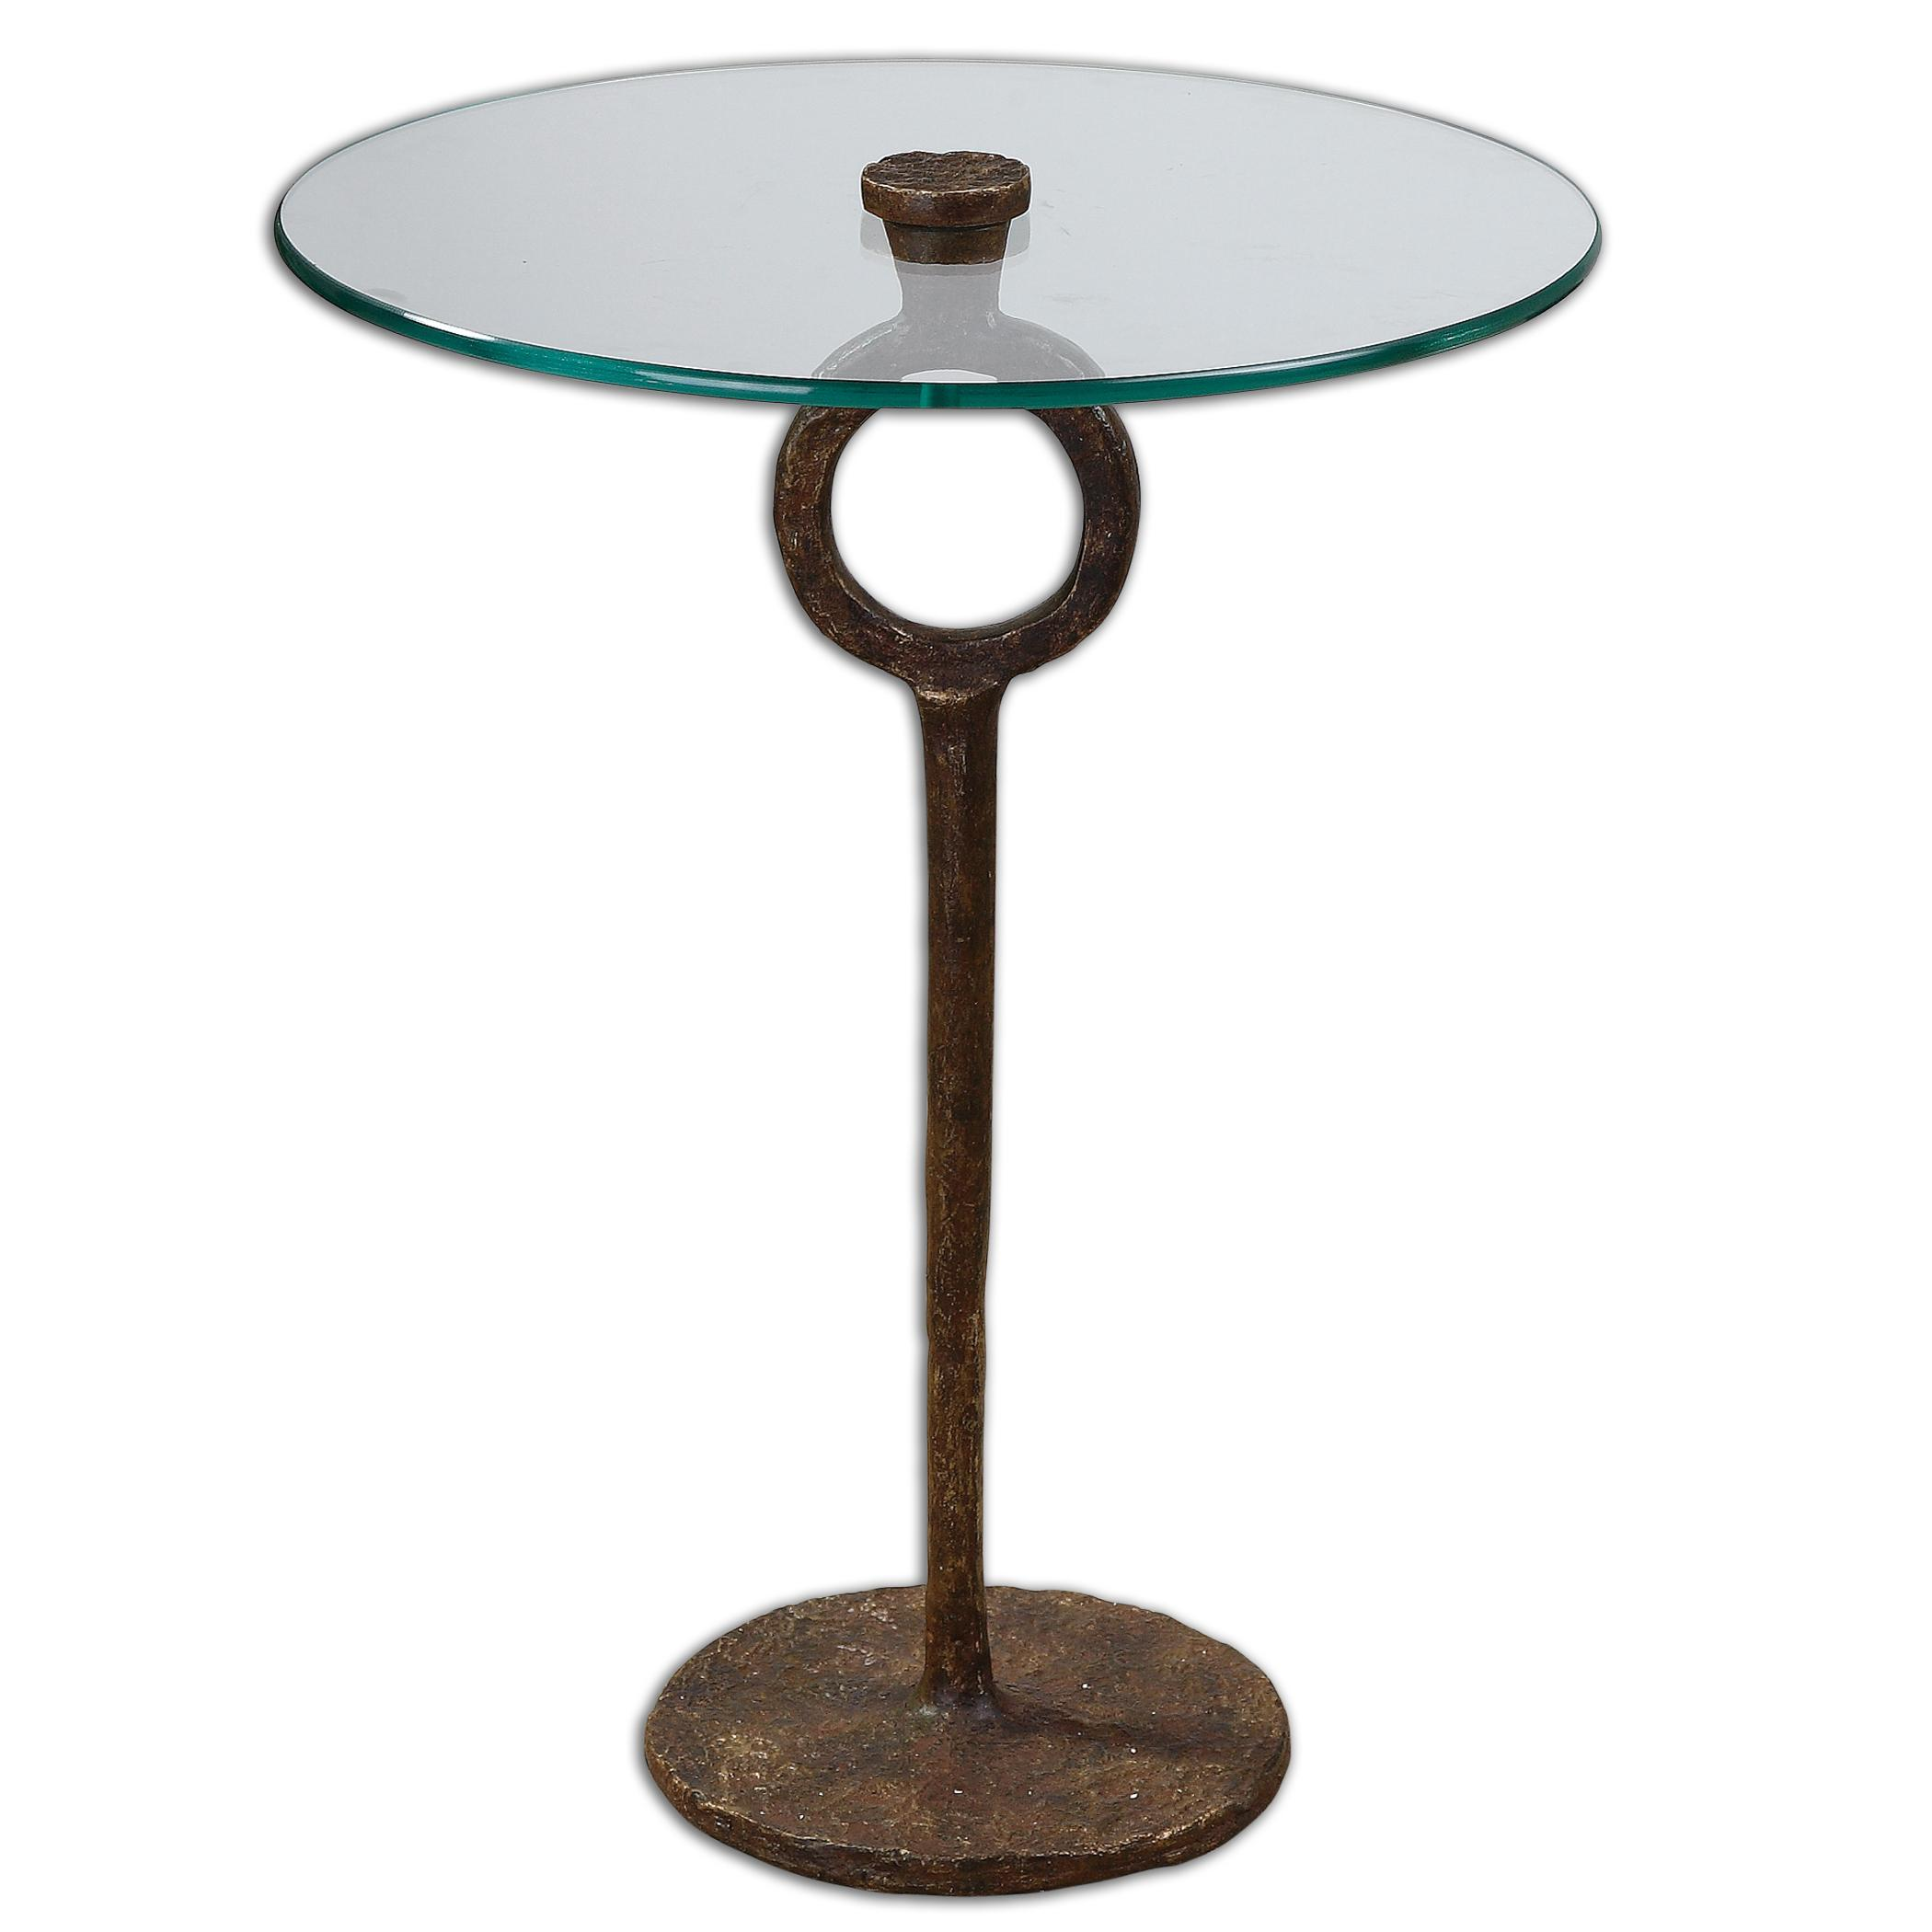 Uttermost Accent Furniture Diogo Glass Accent Table - Item Number: 24336